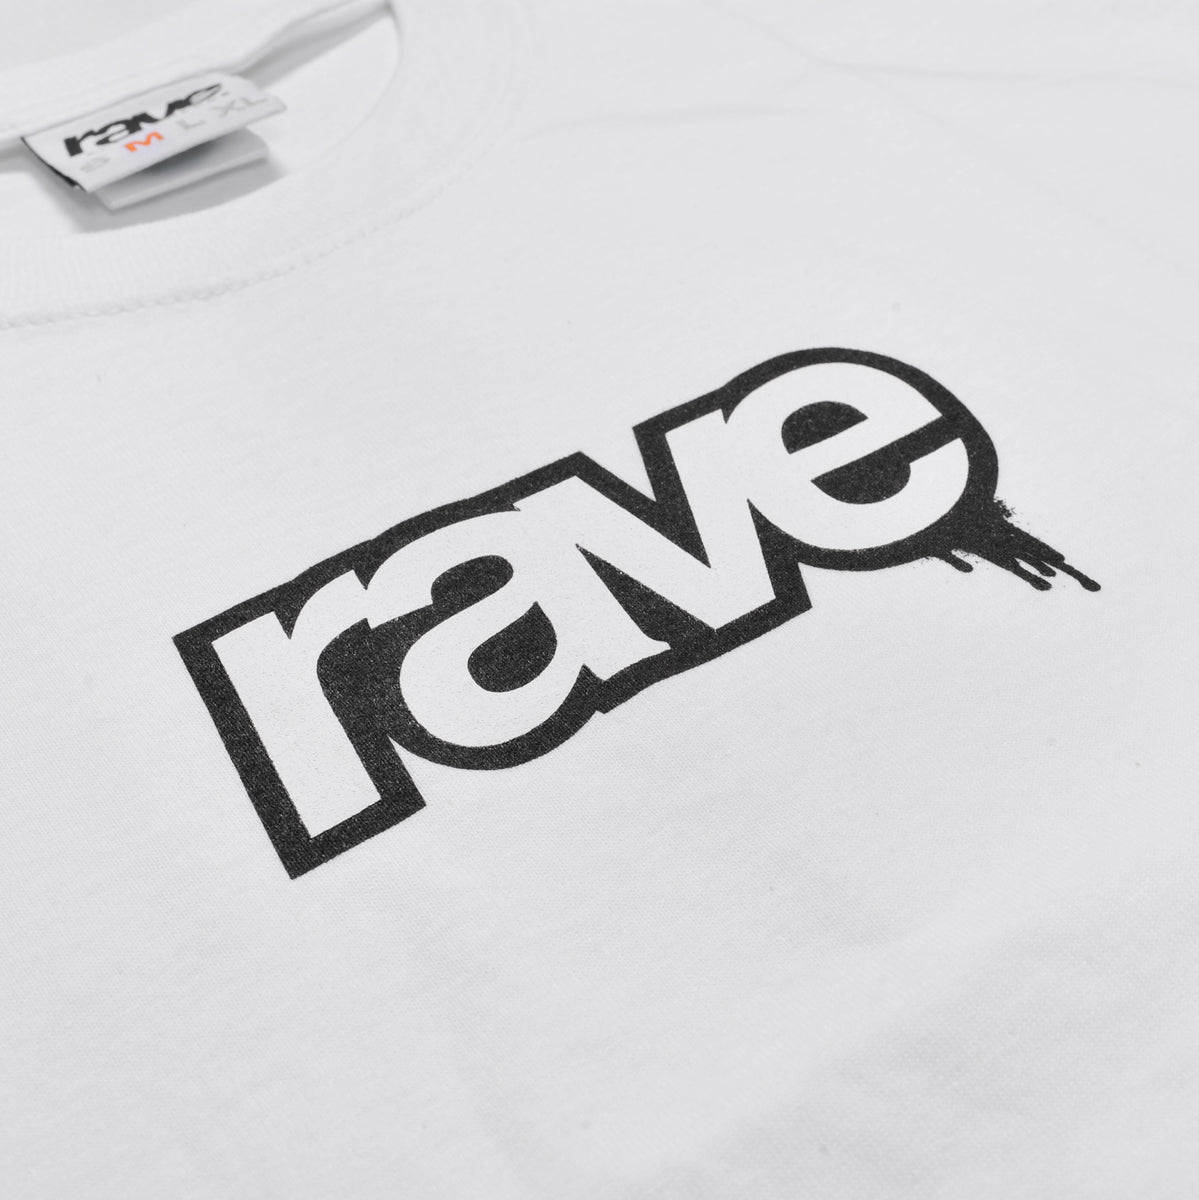 DROPS white tee - RAVE skateboards